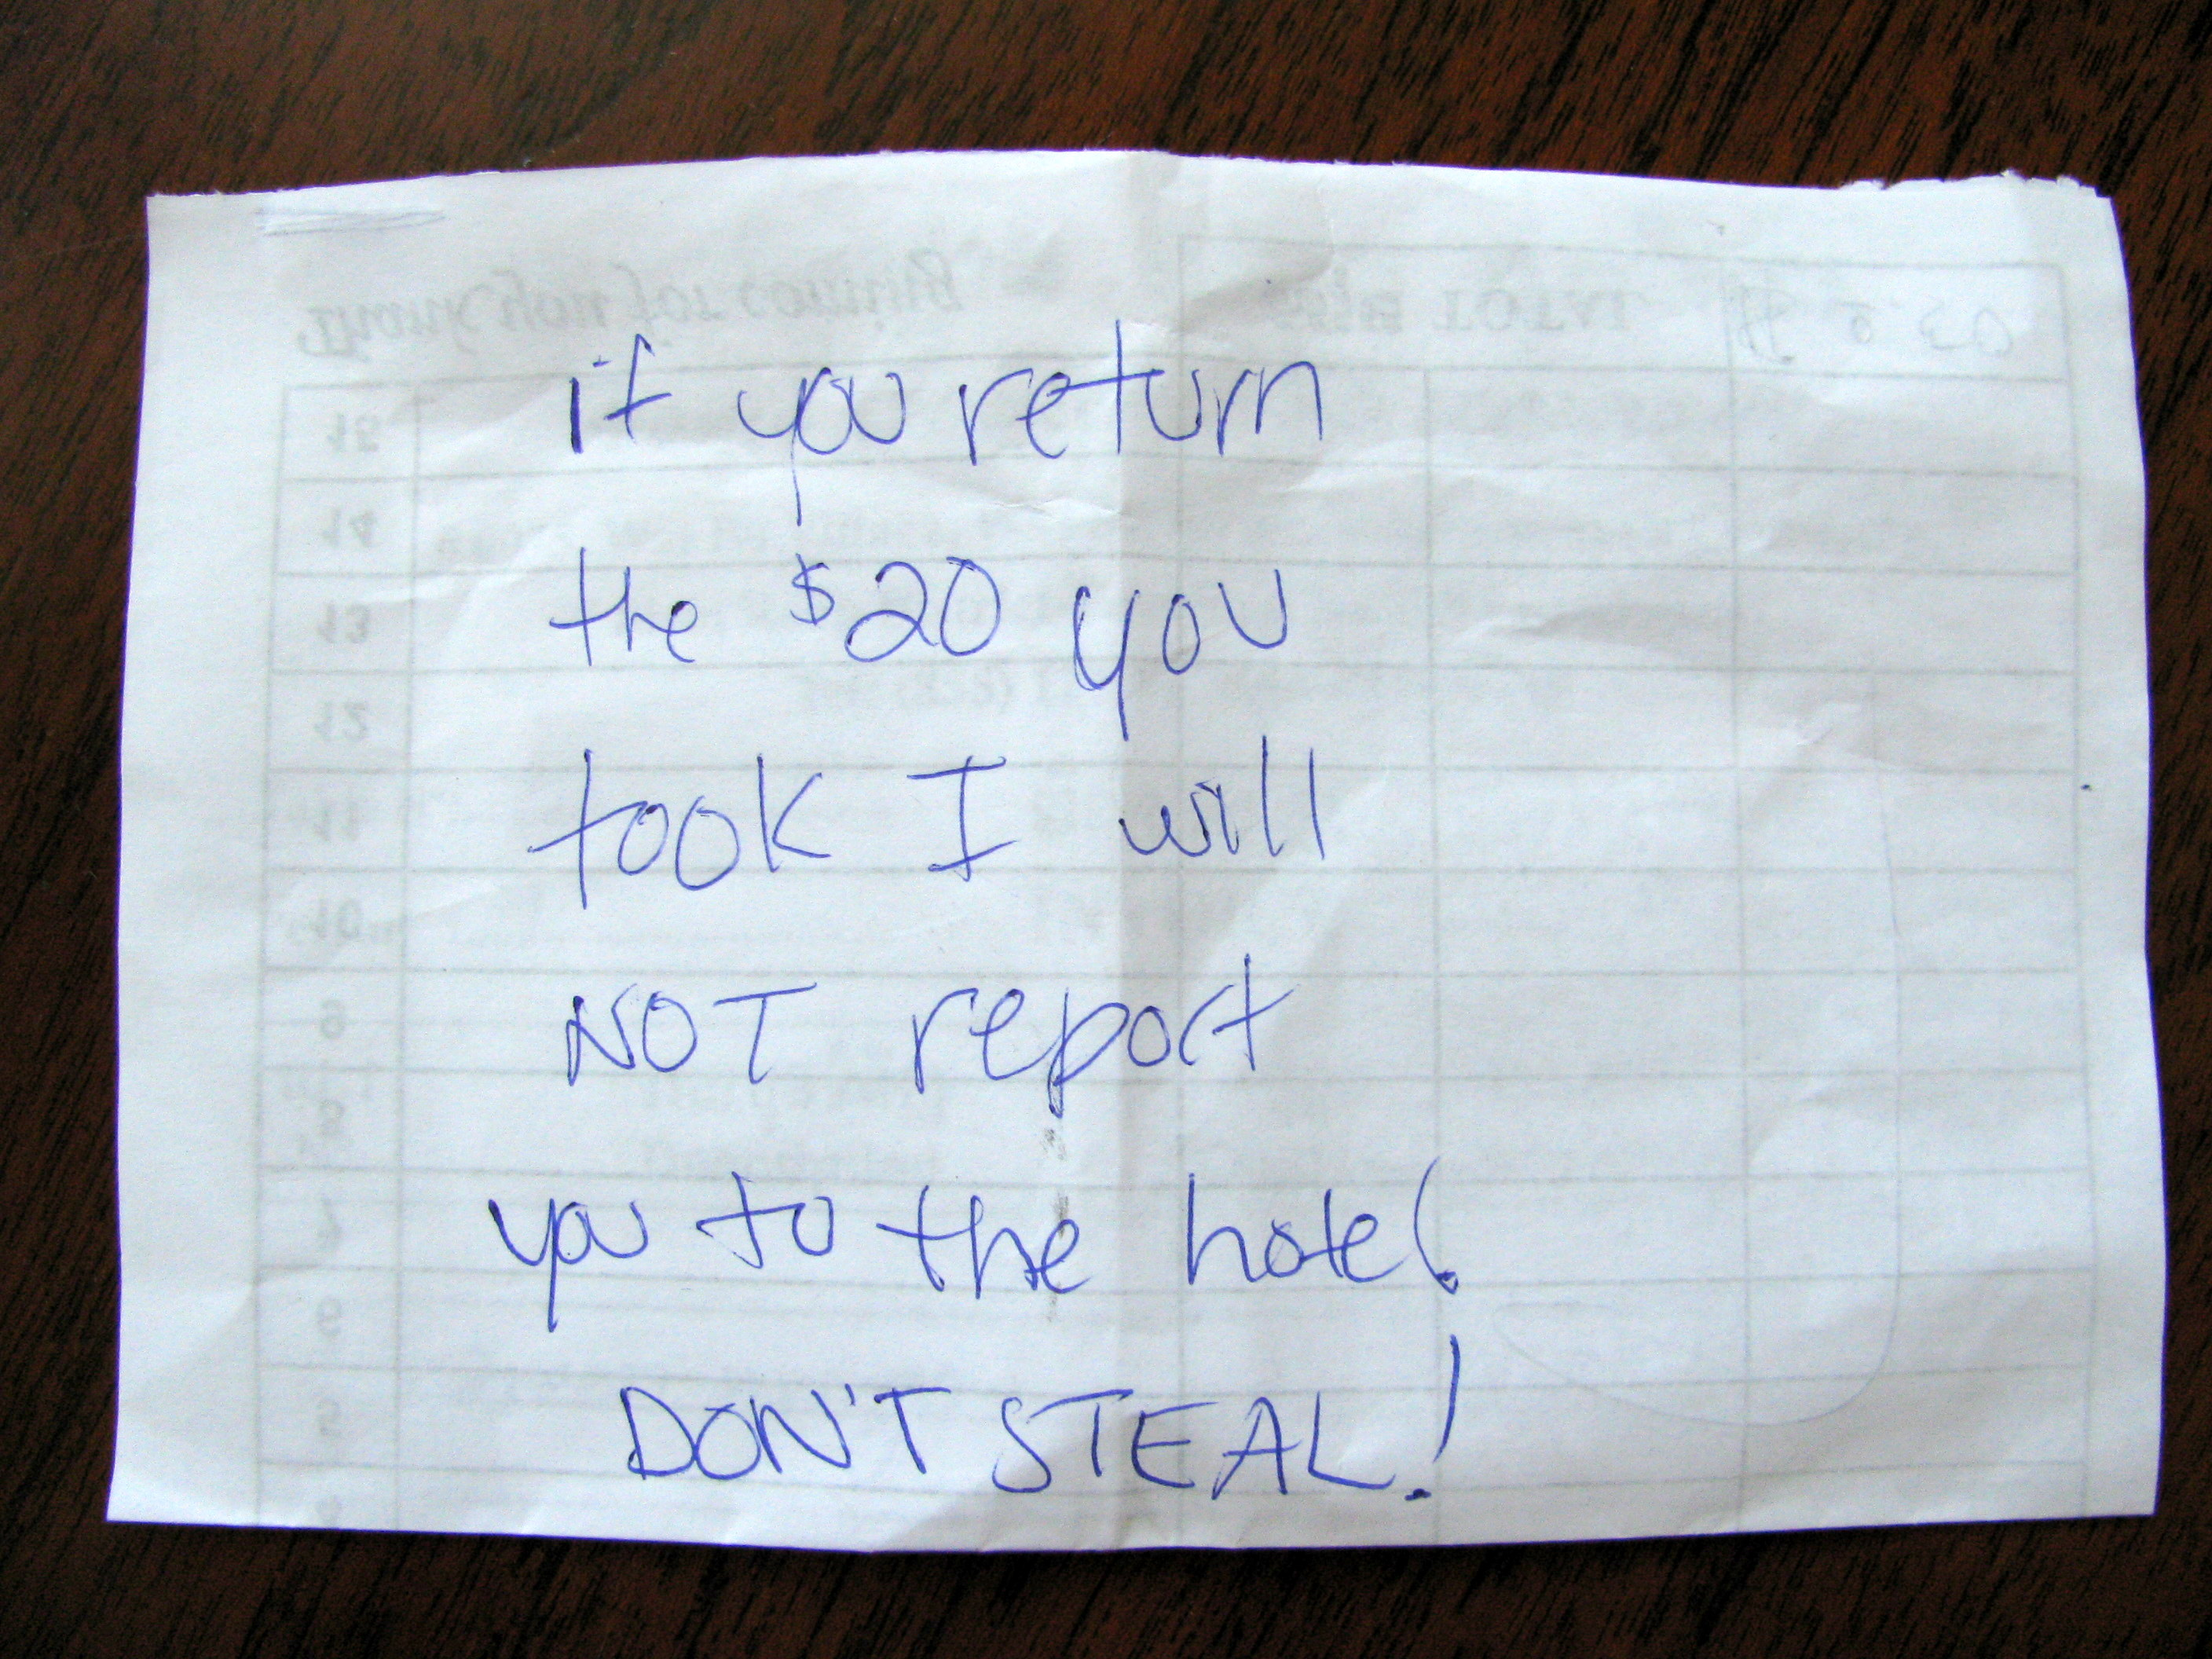 Note left in hotel room safe, Le Meridien Angkor, Siem Reap, Cambodia